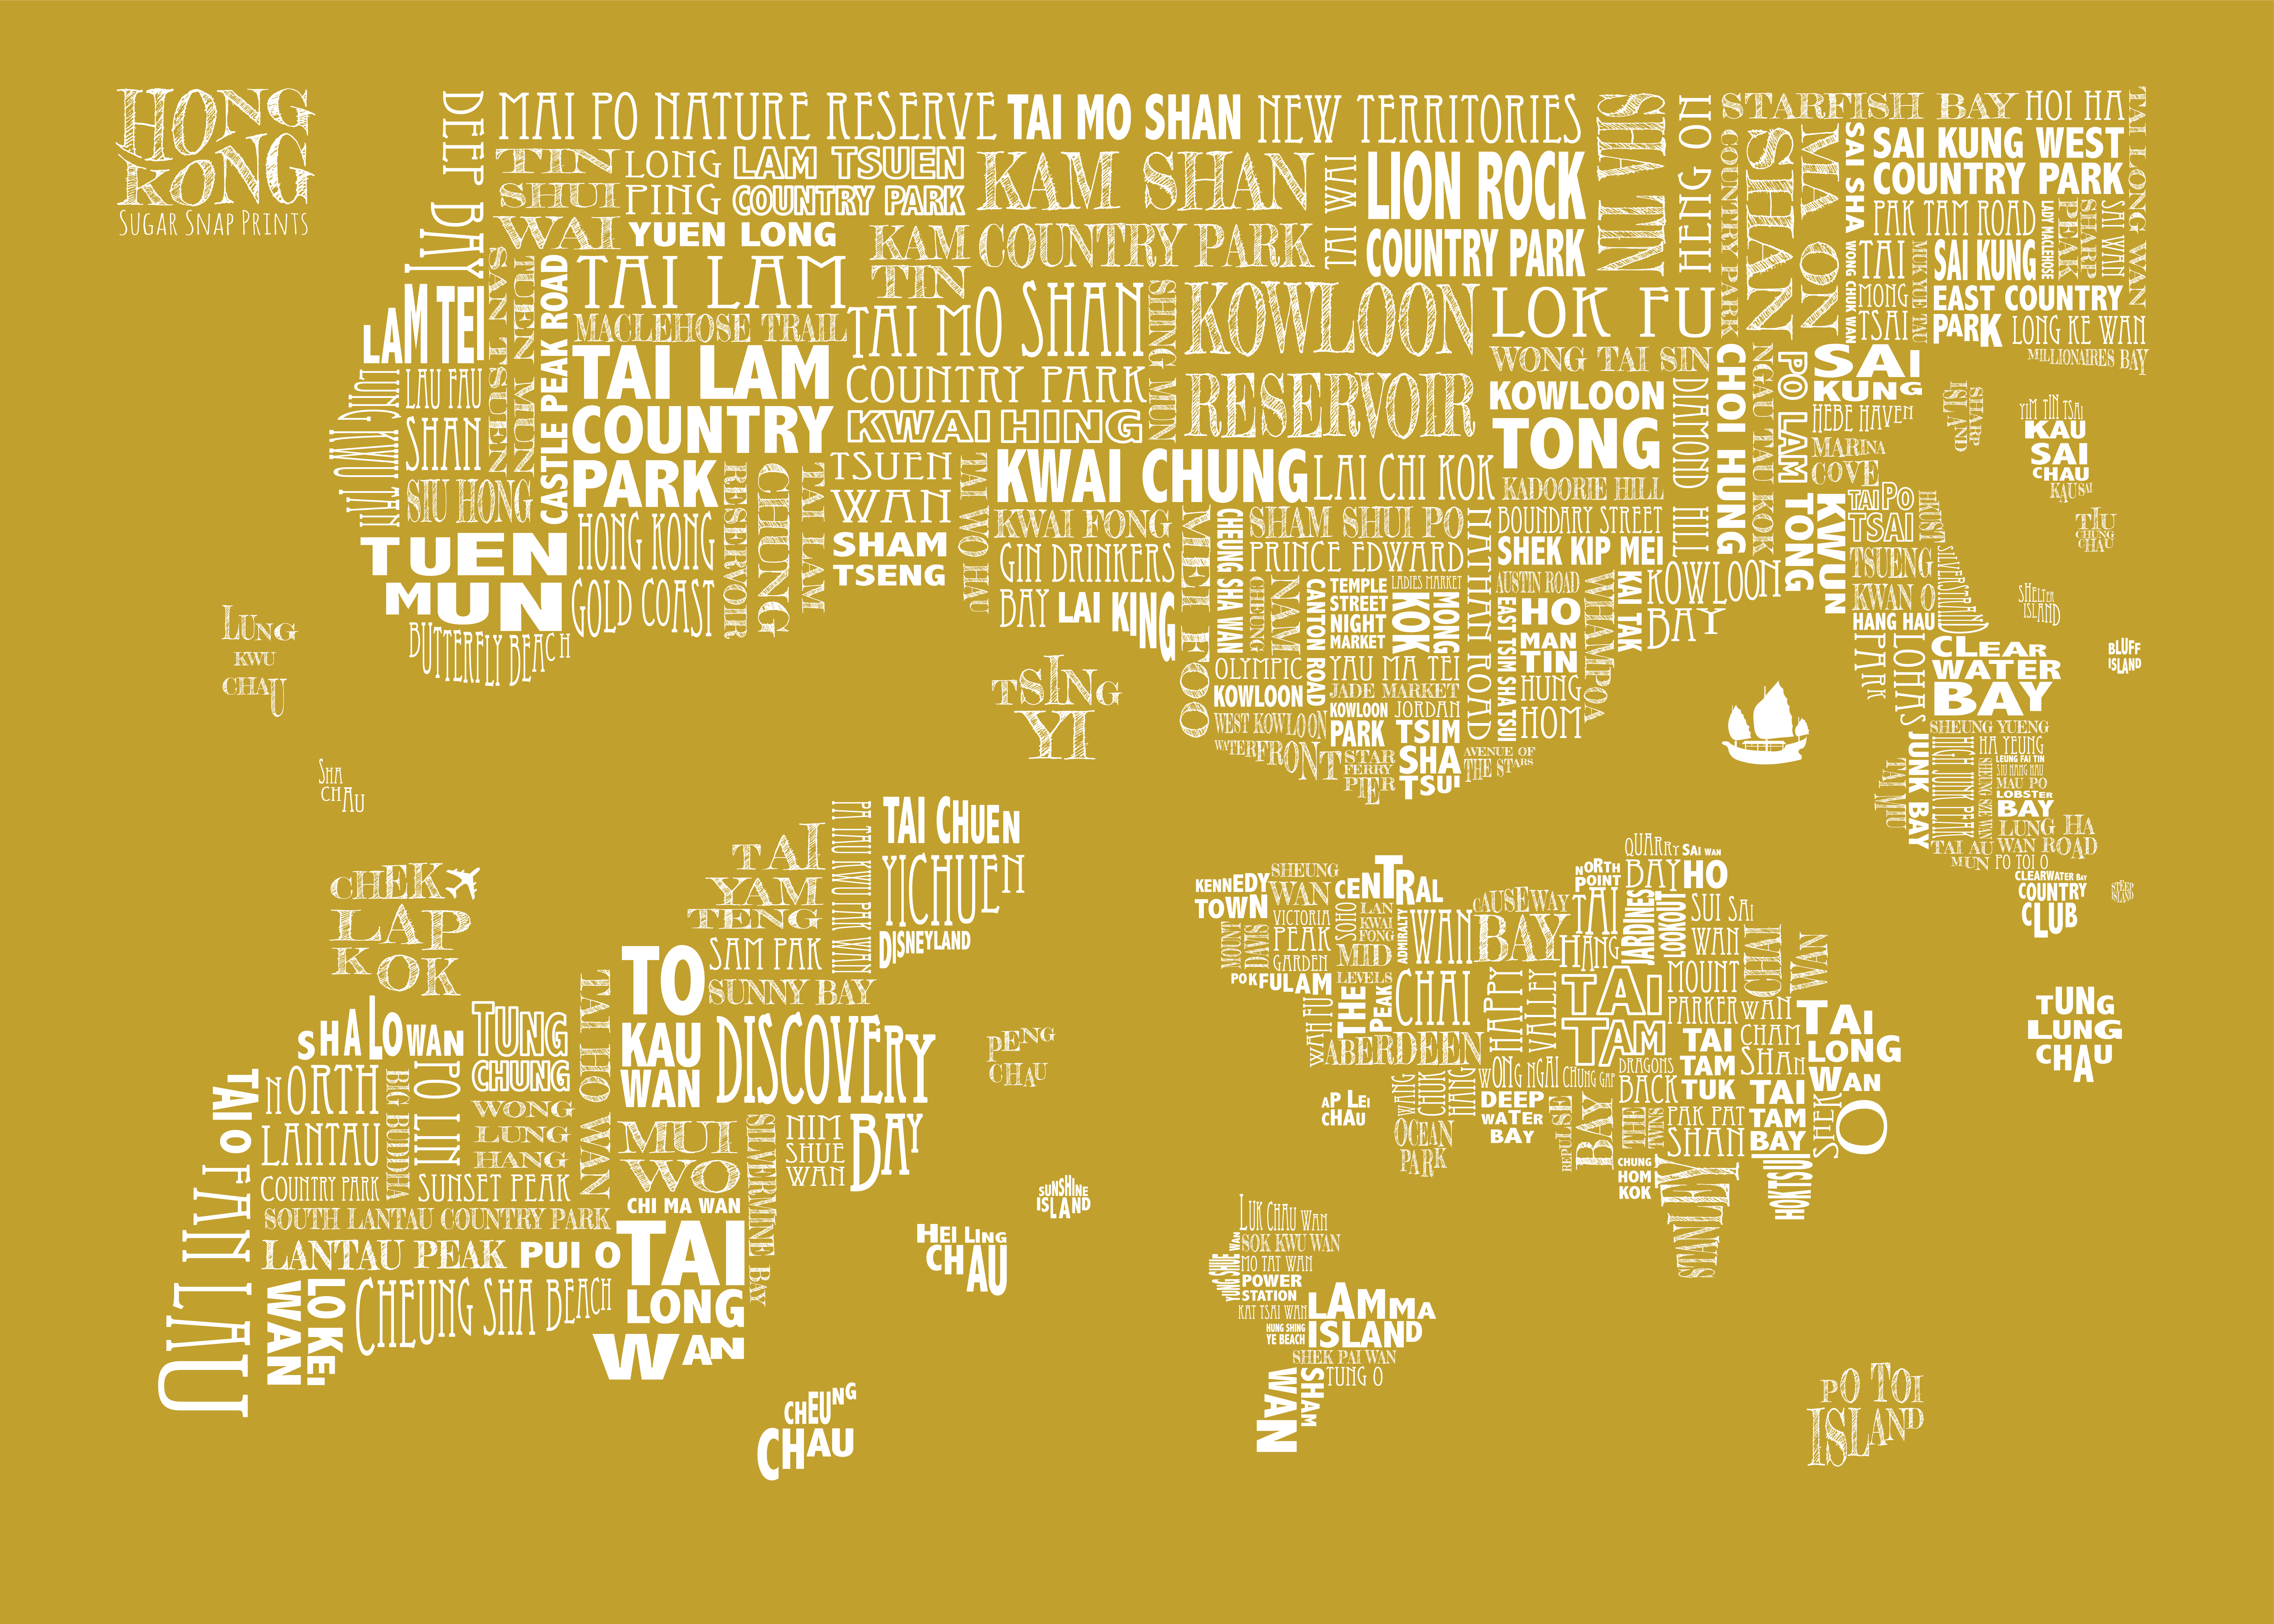 mustard HONG KONG MAP 50x70 print